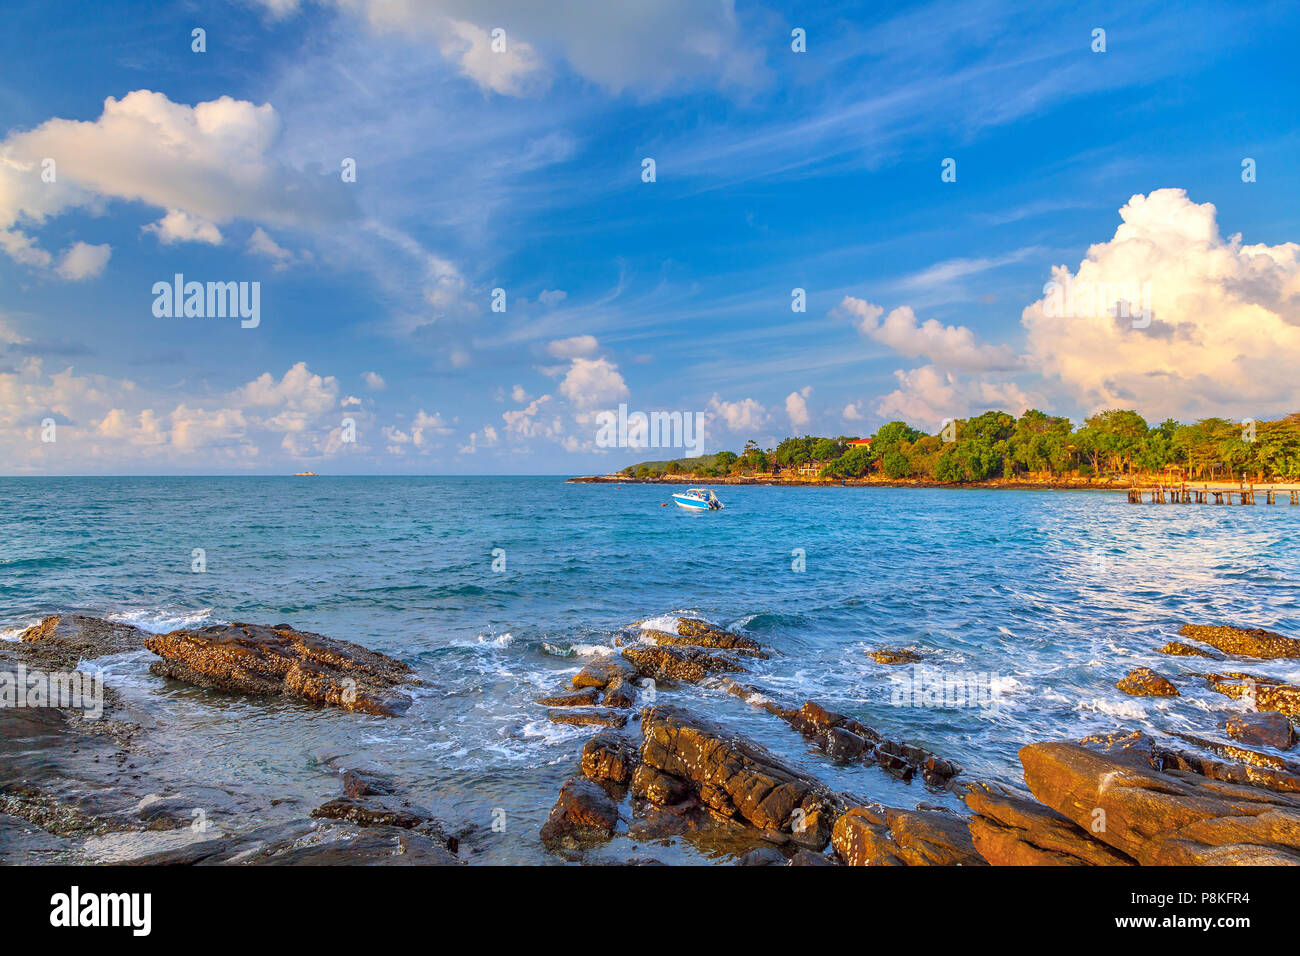 Sunrise over the island of Koh Samad in Thailand. - Stock Image